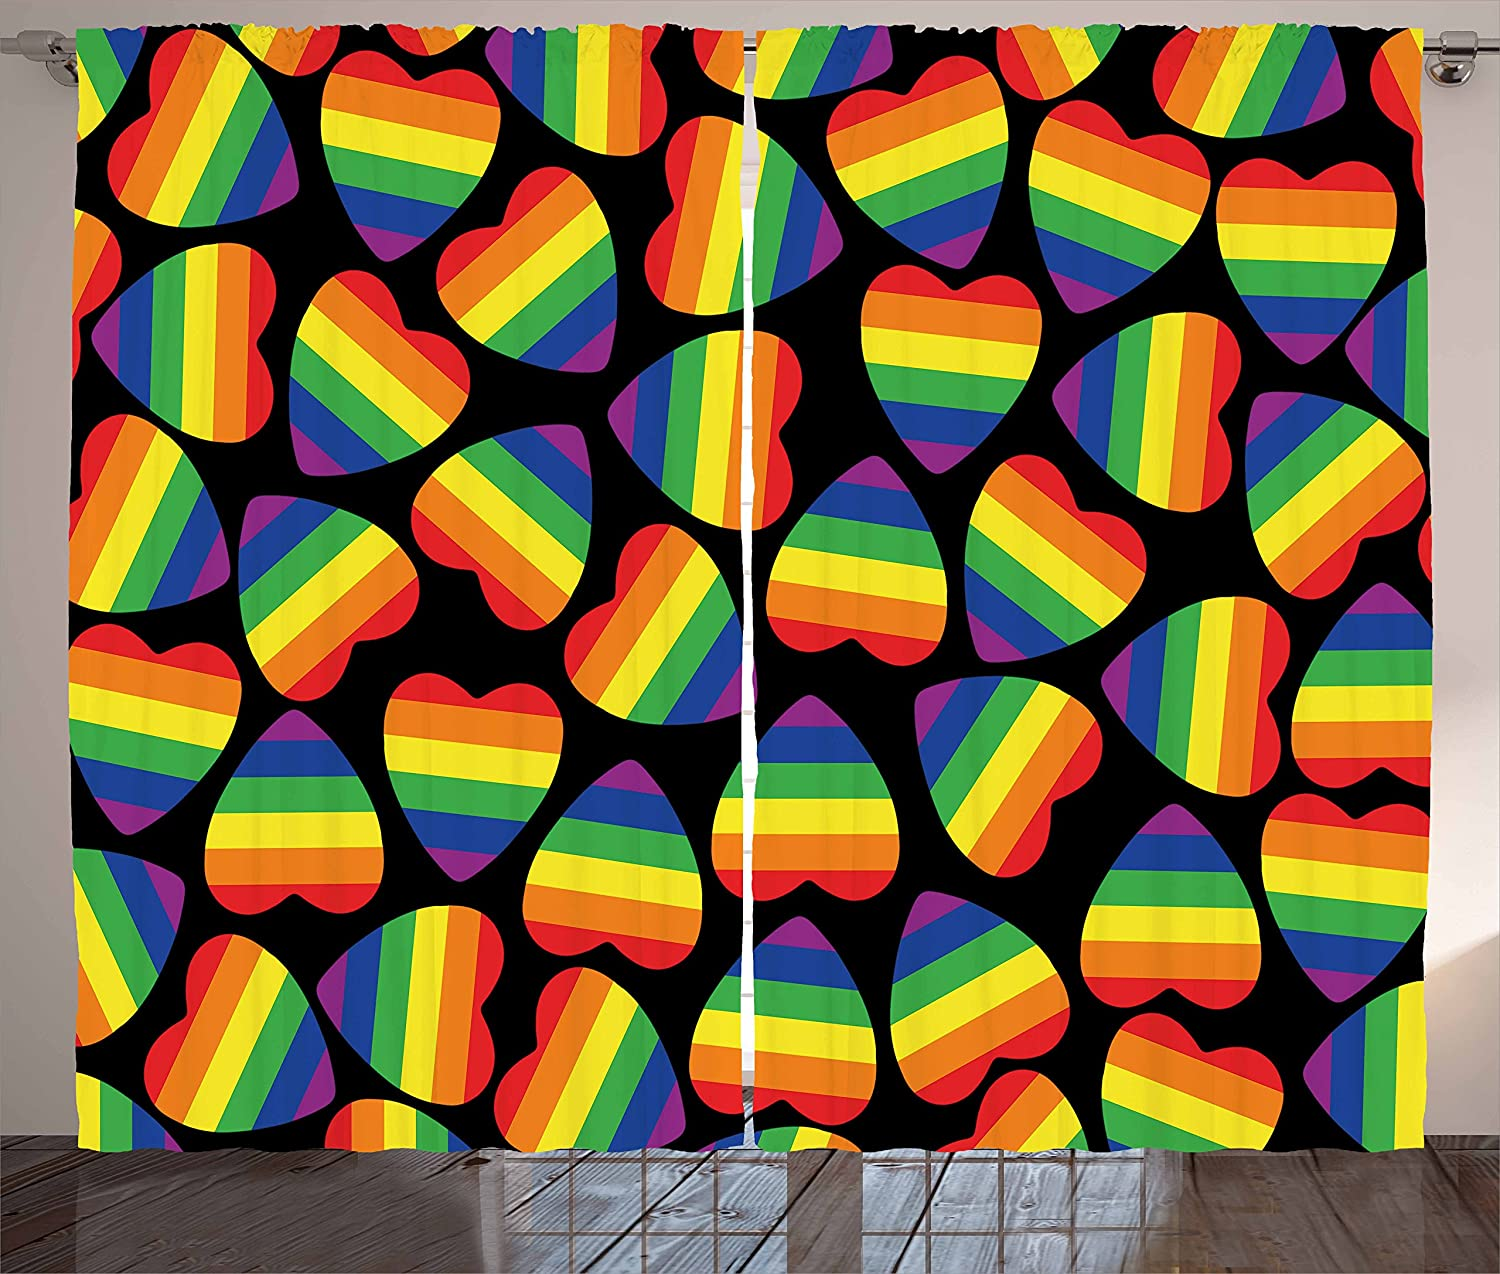 Ambesonne Pride Curtains, Rainbow Colored Striped Heart Shapes on Black Backdrop Gay Lesbian Love Parade Print, Living Room Bedroom Window Drapes 2 Panel Set, 108